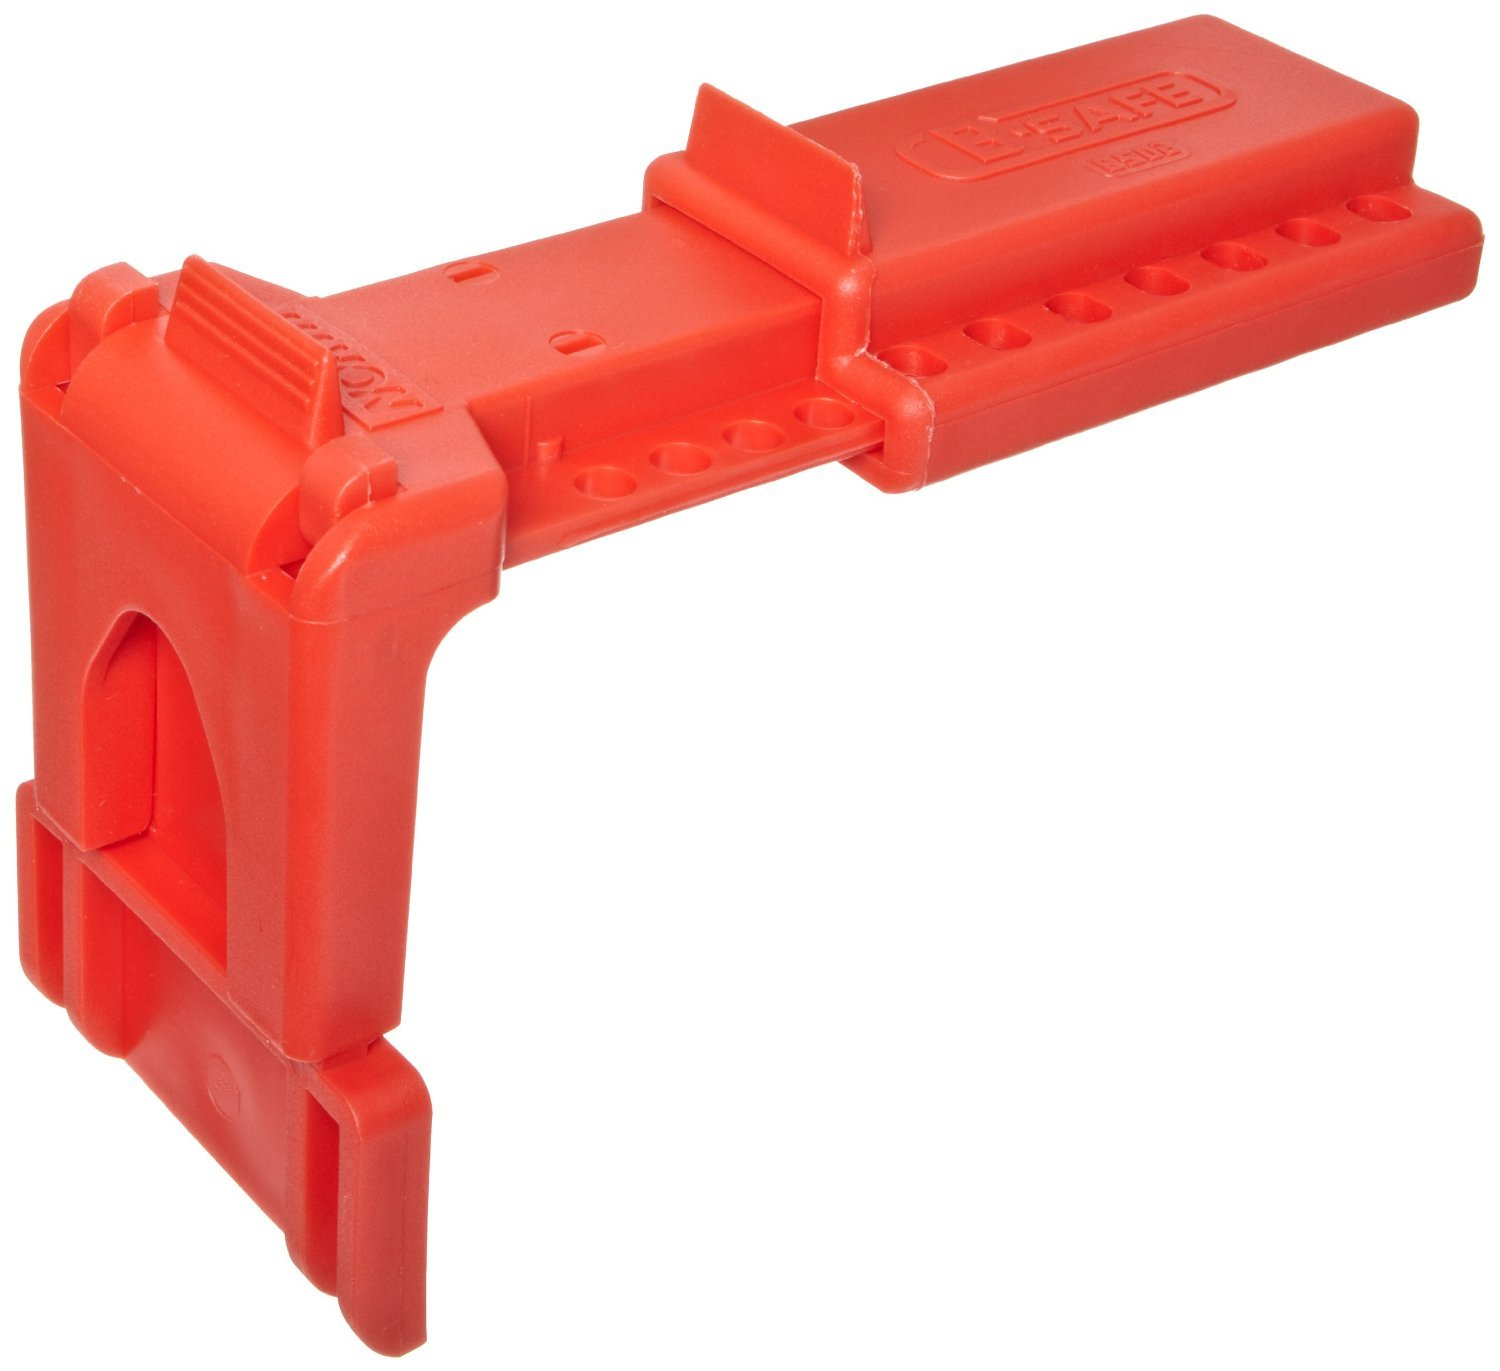 Honeywell BS01R North Red B-Safe Ball Valve Lockout for 3/8'' to 1-1/4'' Valves